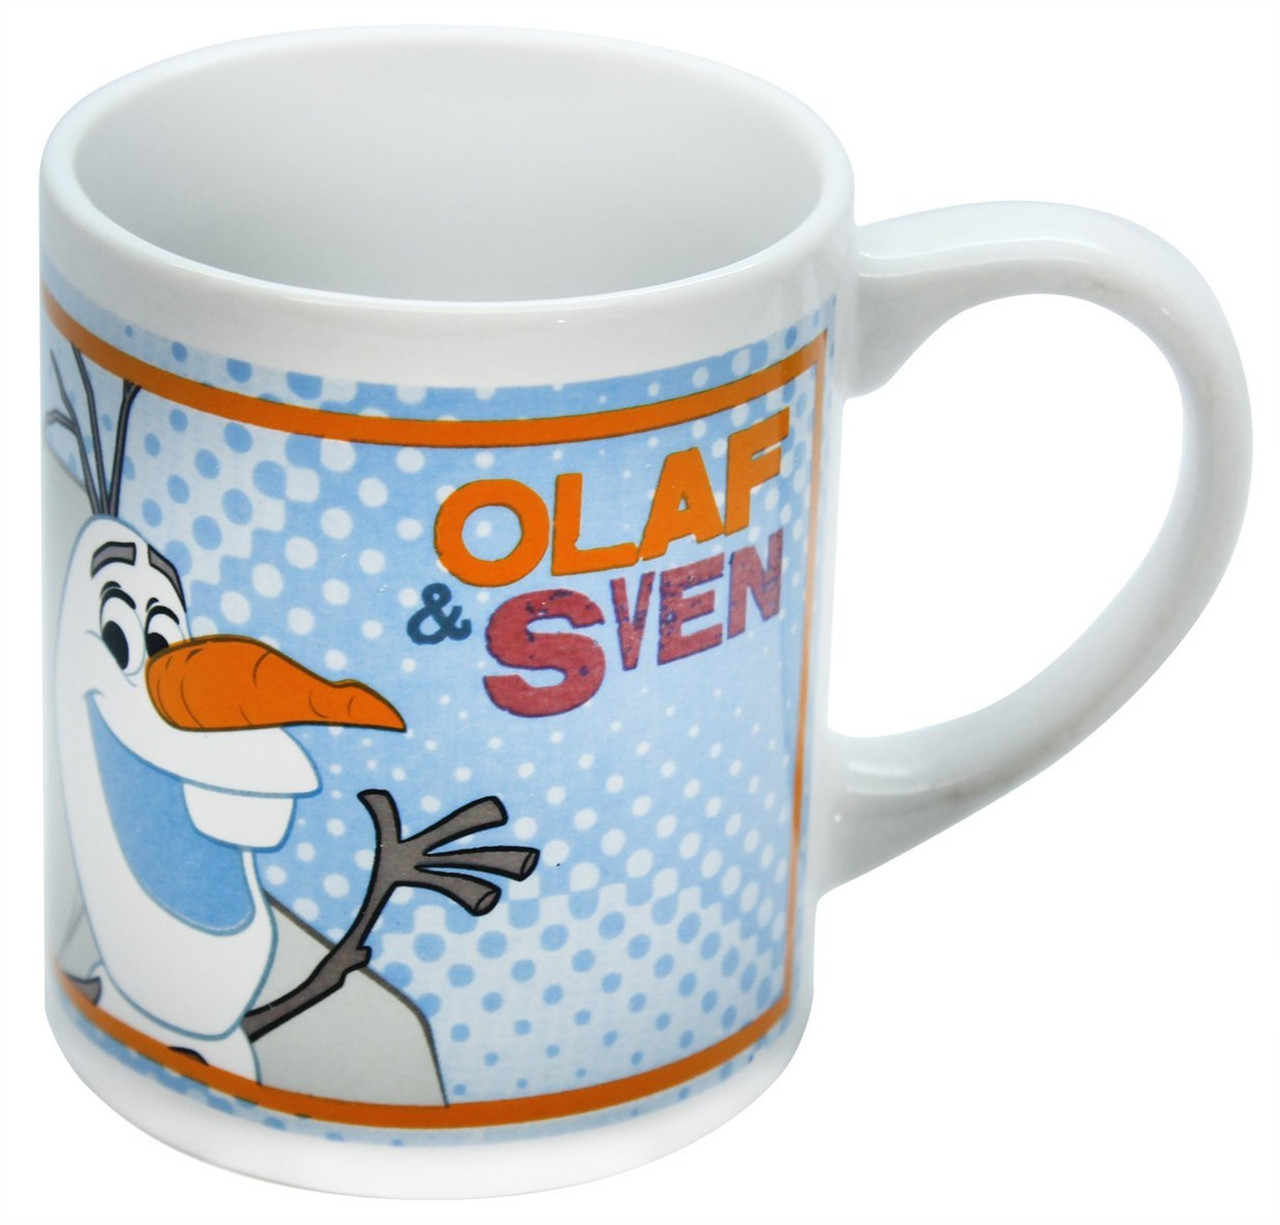 Ceramic Sven Children's Mug Frozen 8oz Disney Olafamp; P8nk0Ow